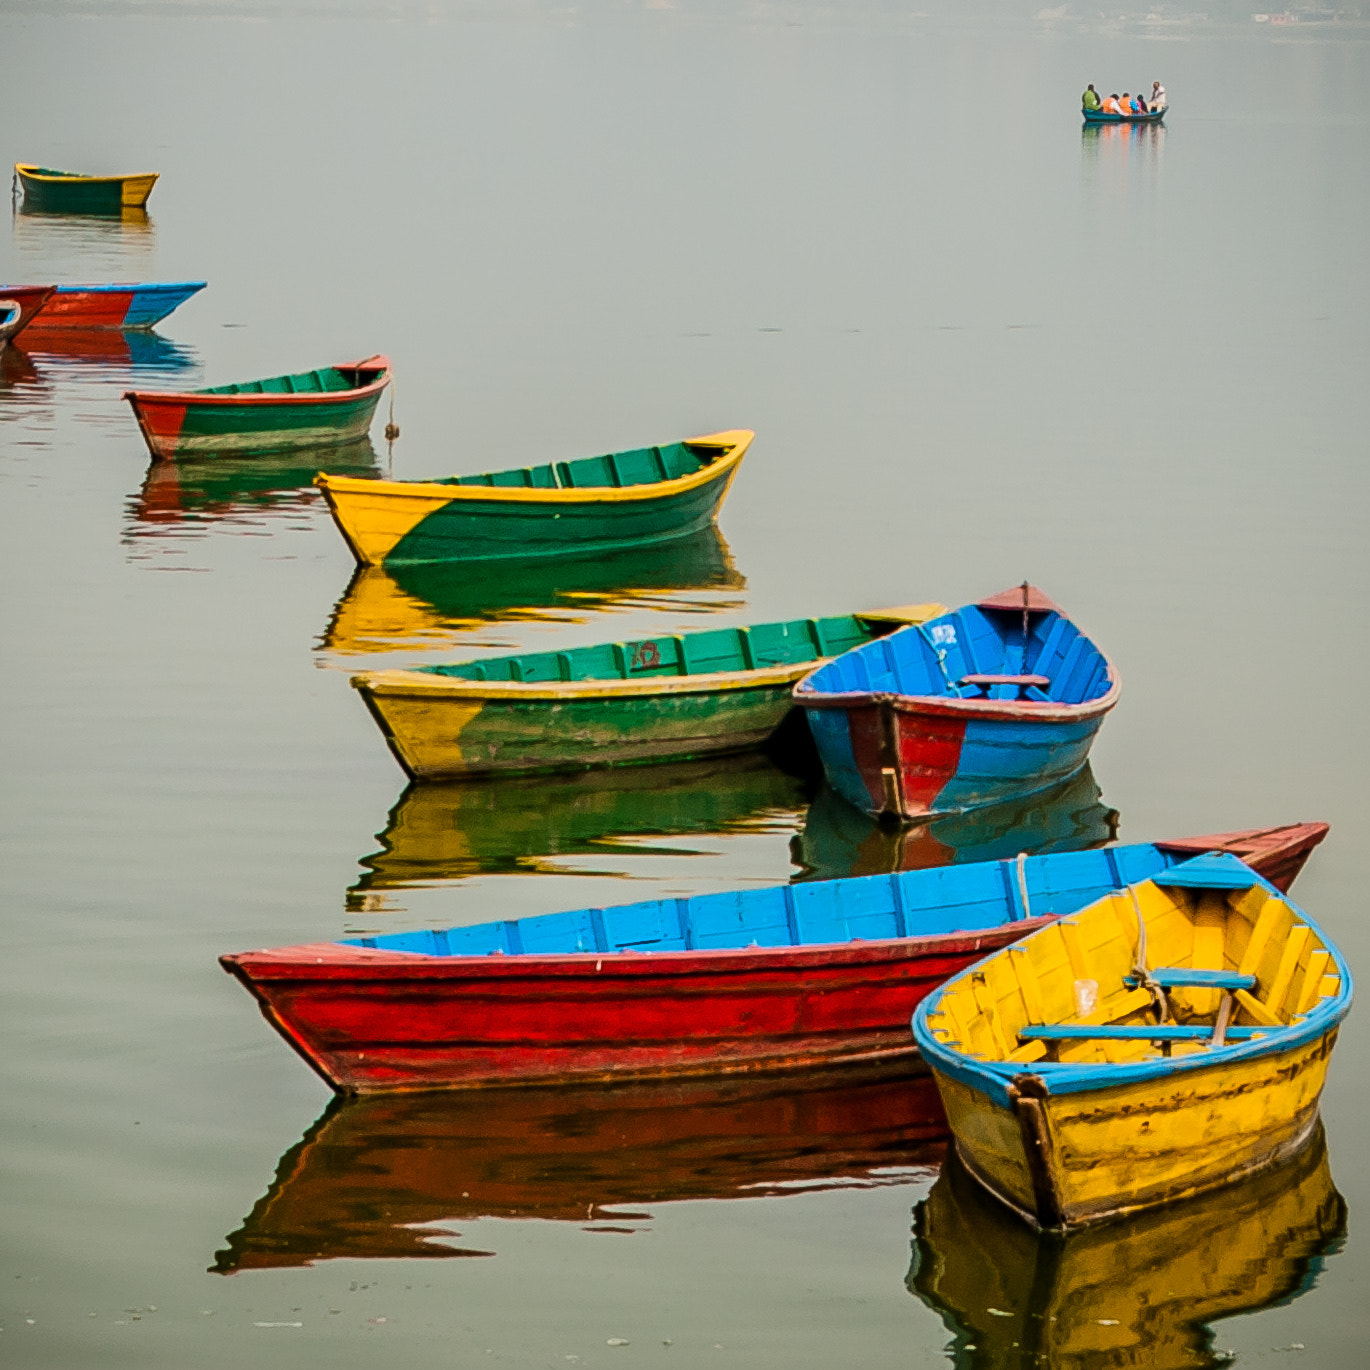 Photograph Boats on plewa lake by Ralf Kayser on 500px